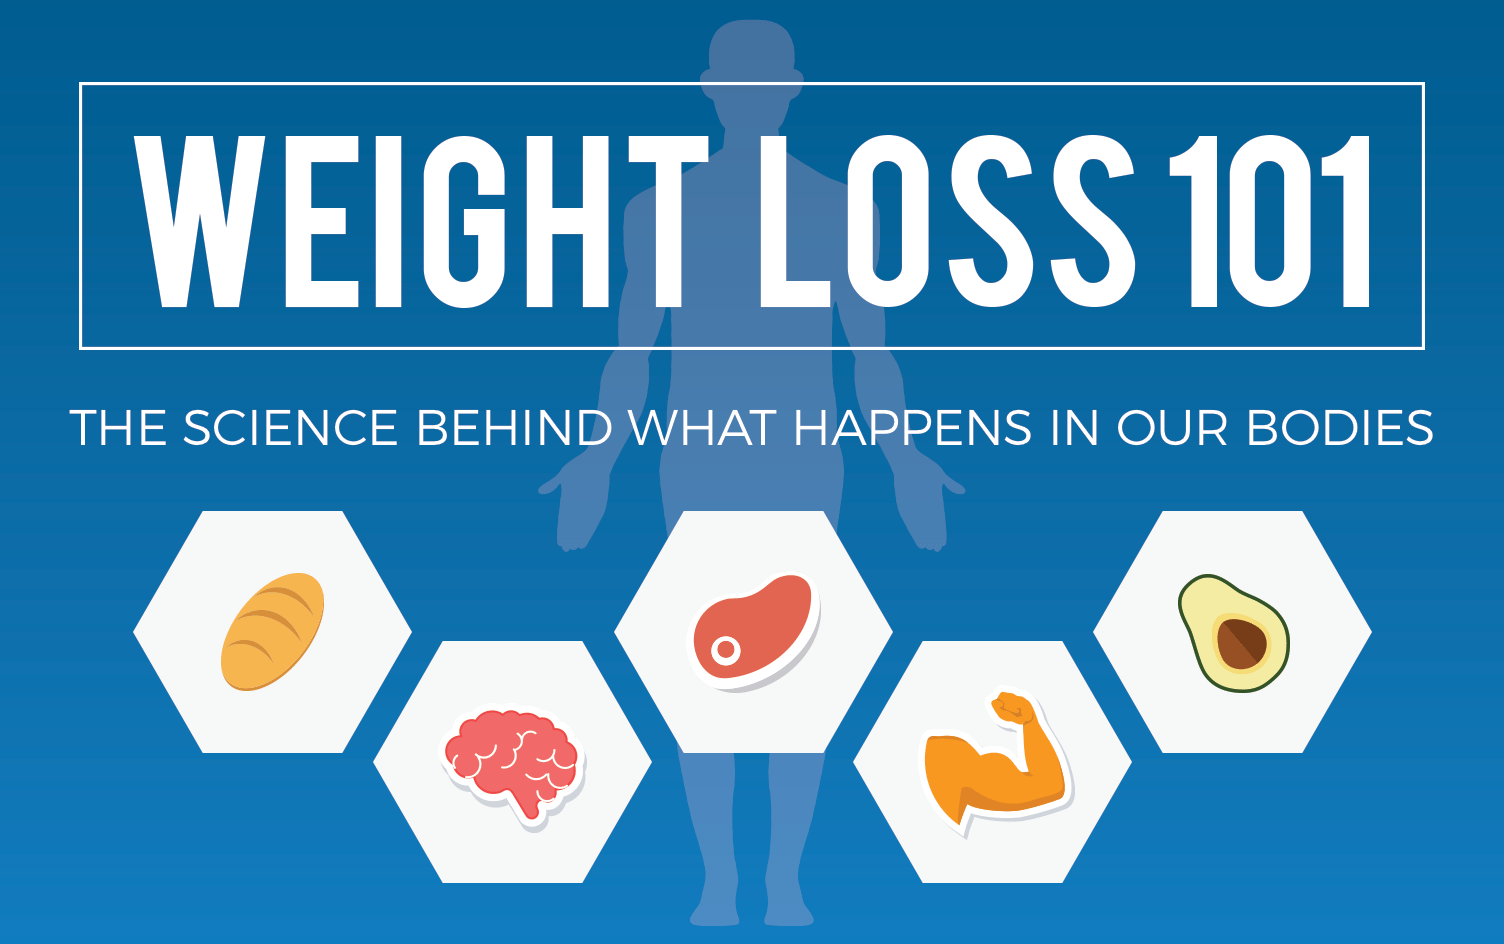 You know the math when it comes to losing weight: Eat smarter and ...